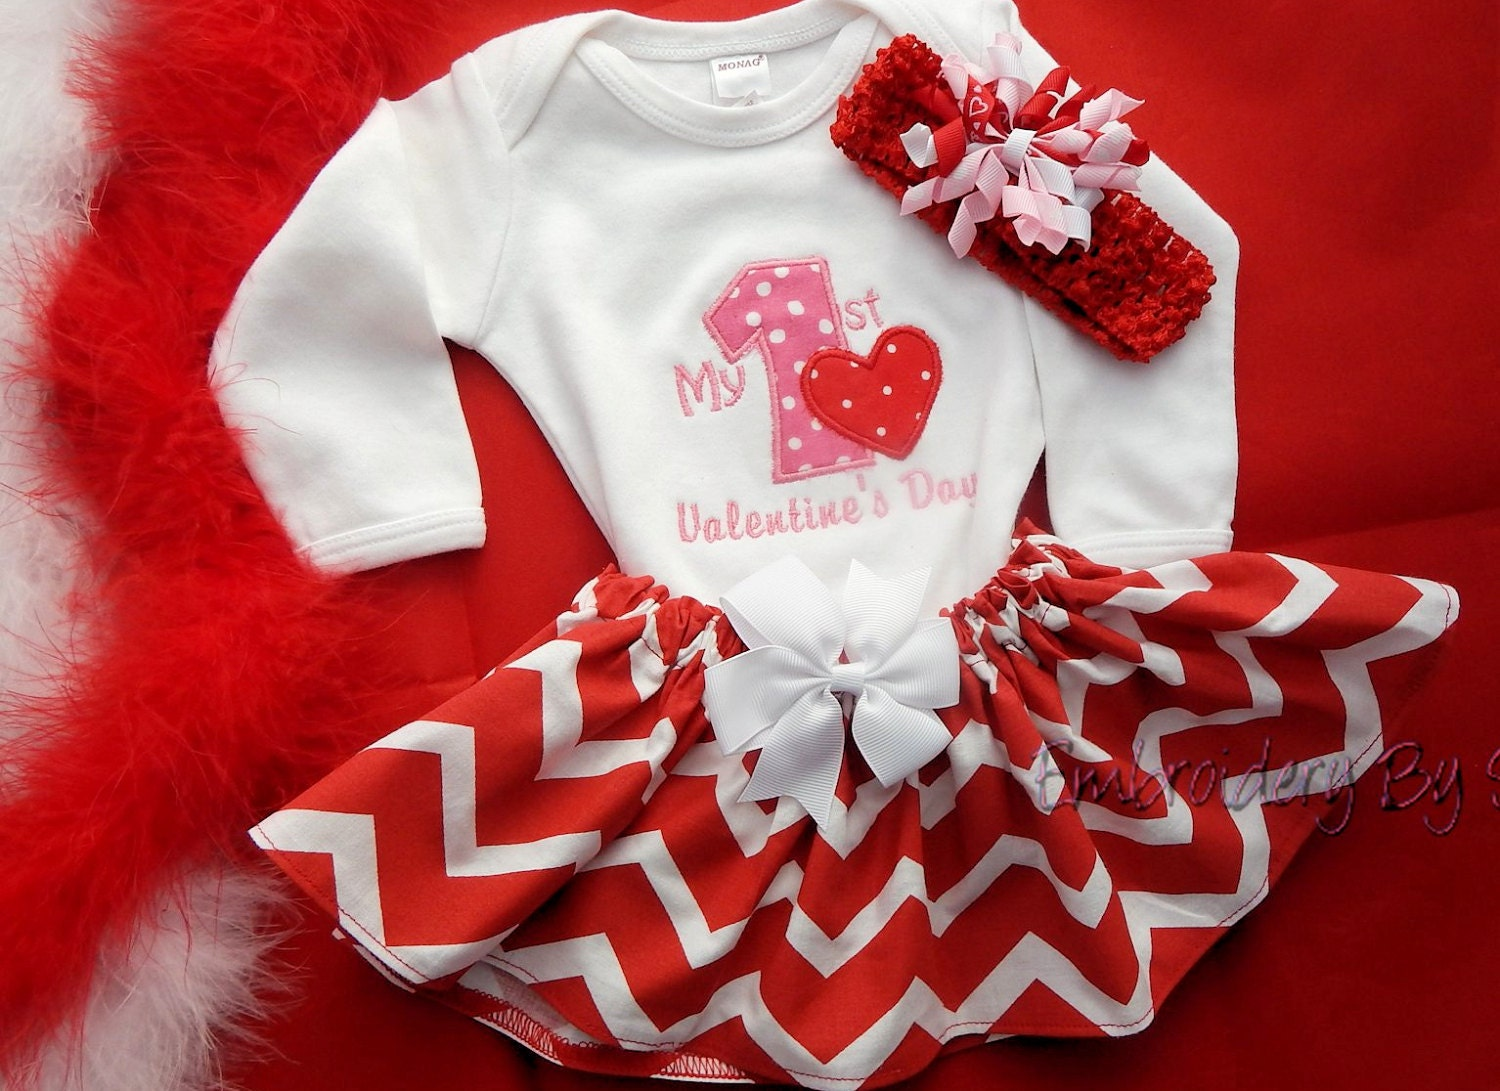 Baby Girlu0026#39;s First Valentineu0026#39;s Day Outfit By EmbroiderybySharon